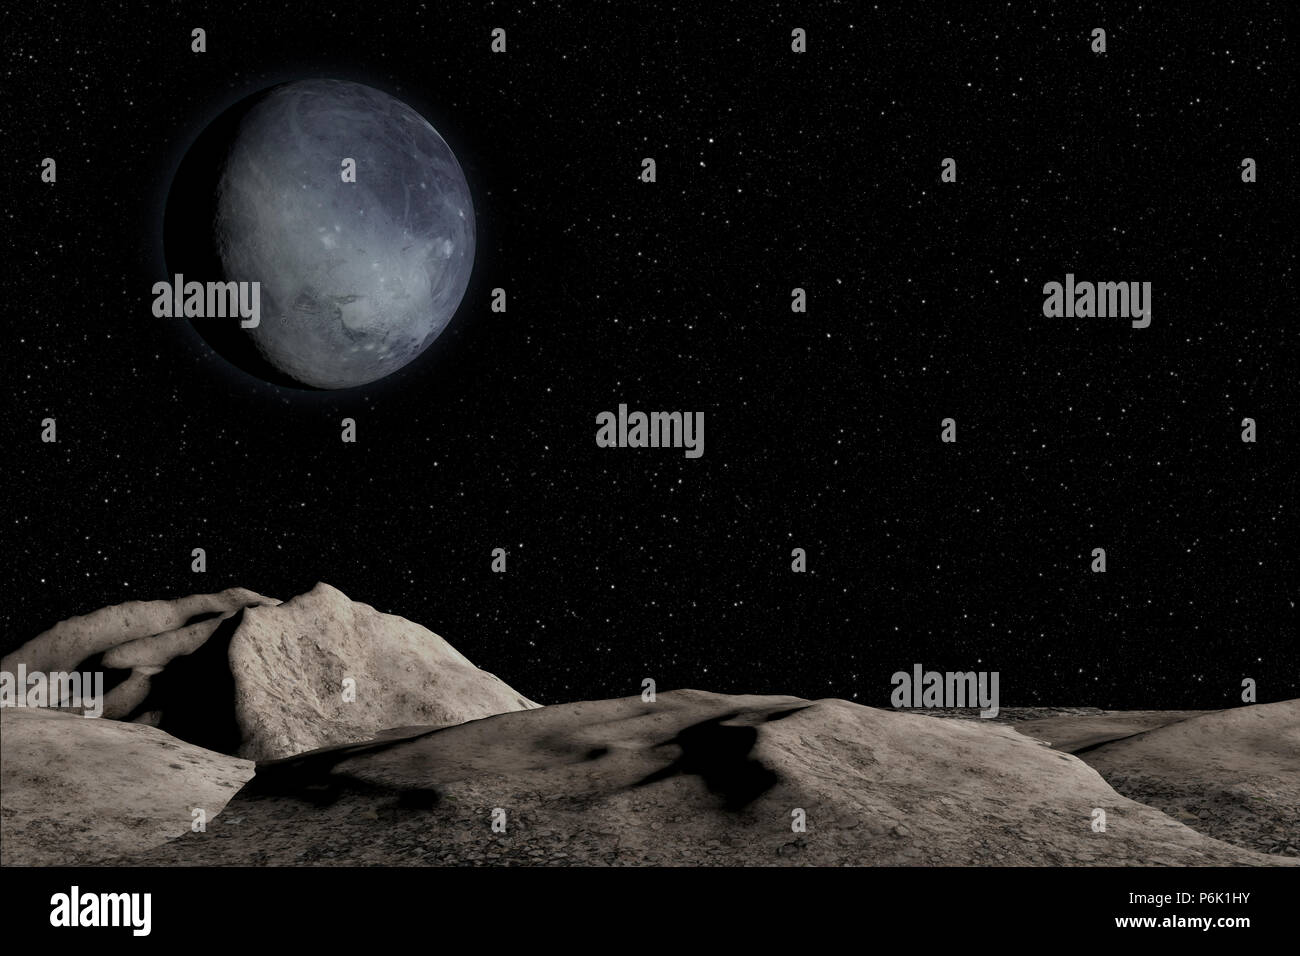 Unknown planet, stars and nebula in outer space. - Stock Image